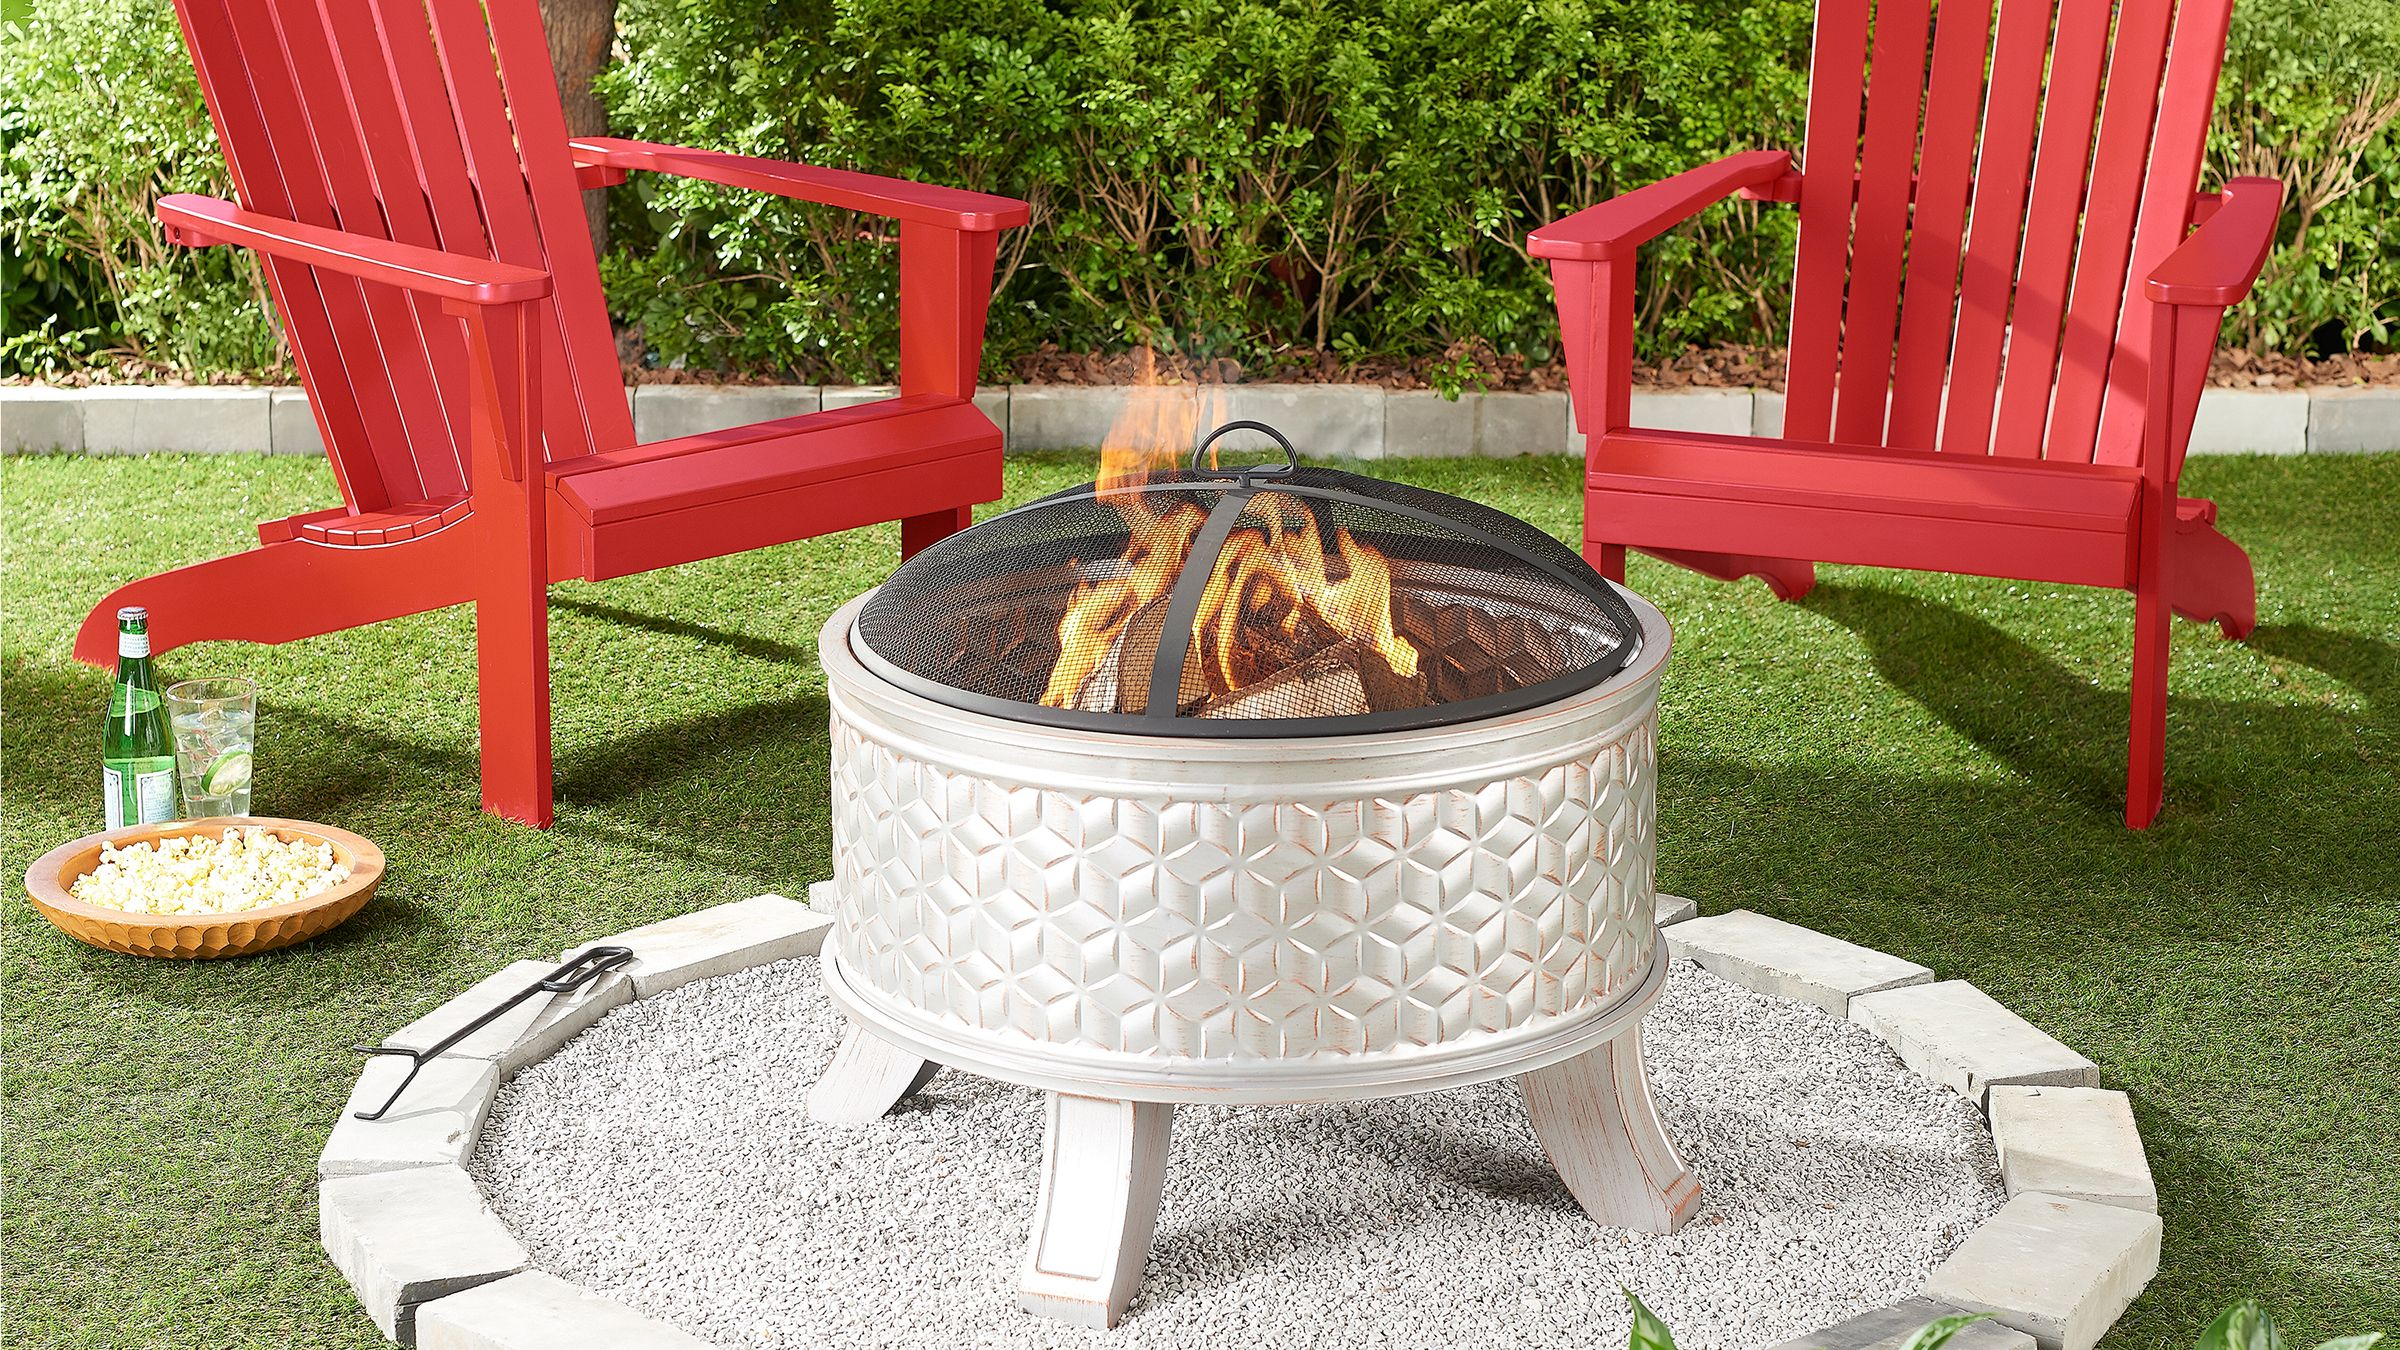 You Can Redo Your Backyard With These Deals From Walmart's Two-Day Spring Savings Event